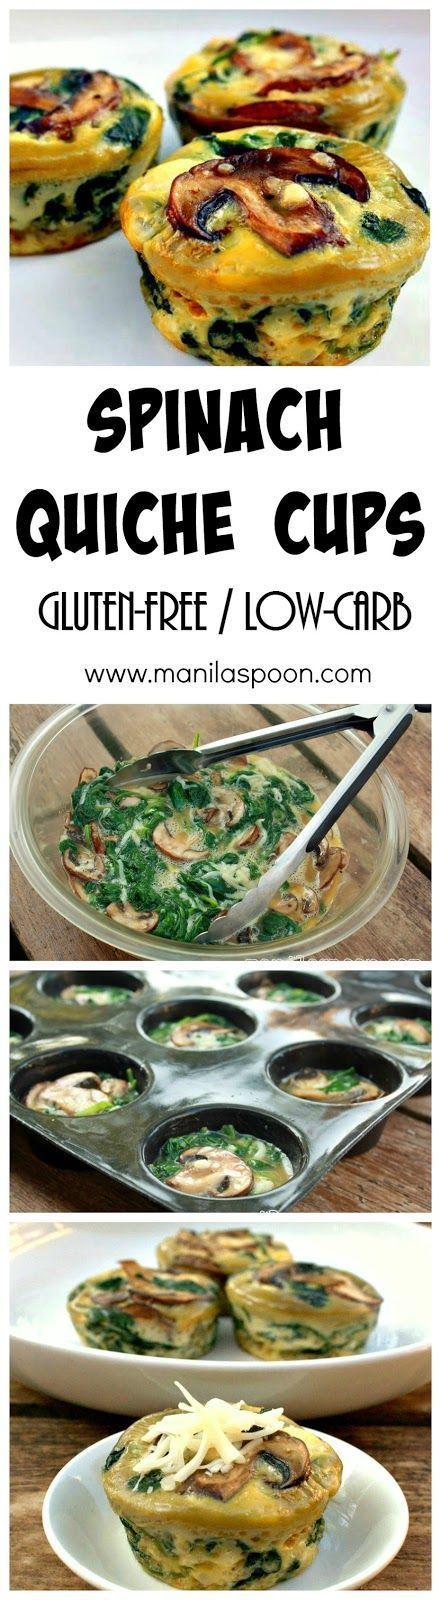 Completely gluten-free and low-carb is this healthy and delicious SPINACH QUICHE CUPS that everyone will enjoy. Perfect for breakfast or… Facebook Pinterest StumbleUpon Tumblr VKontakte